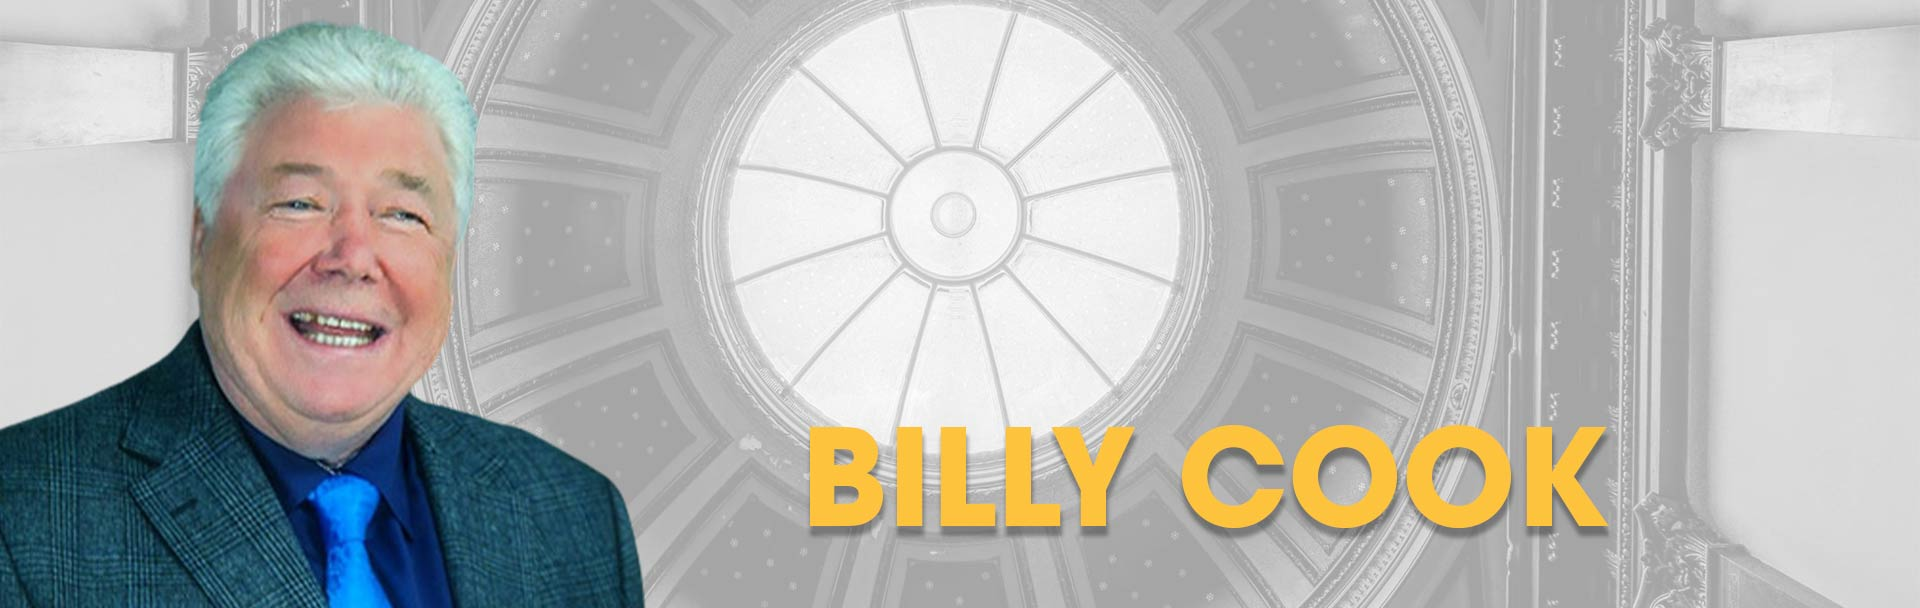 Billy Cook is part of Saturday Night Demonstrations of Mediumship at the Sir Arthur Conan Doyle Centre